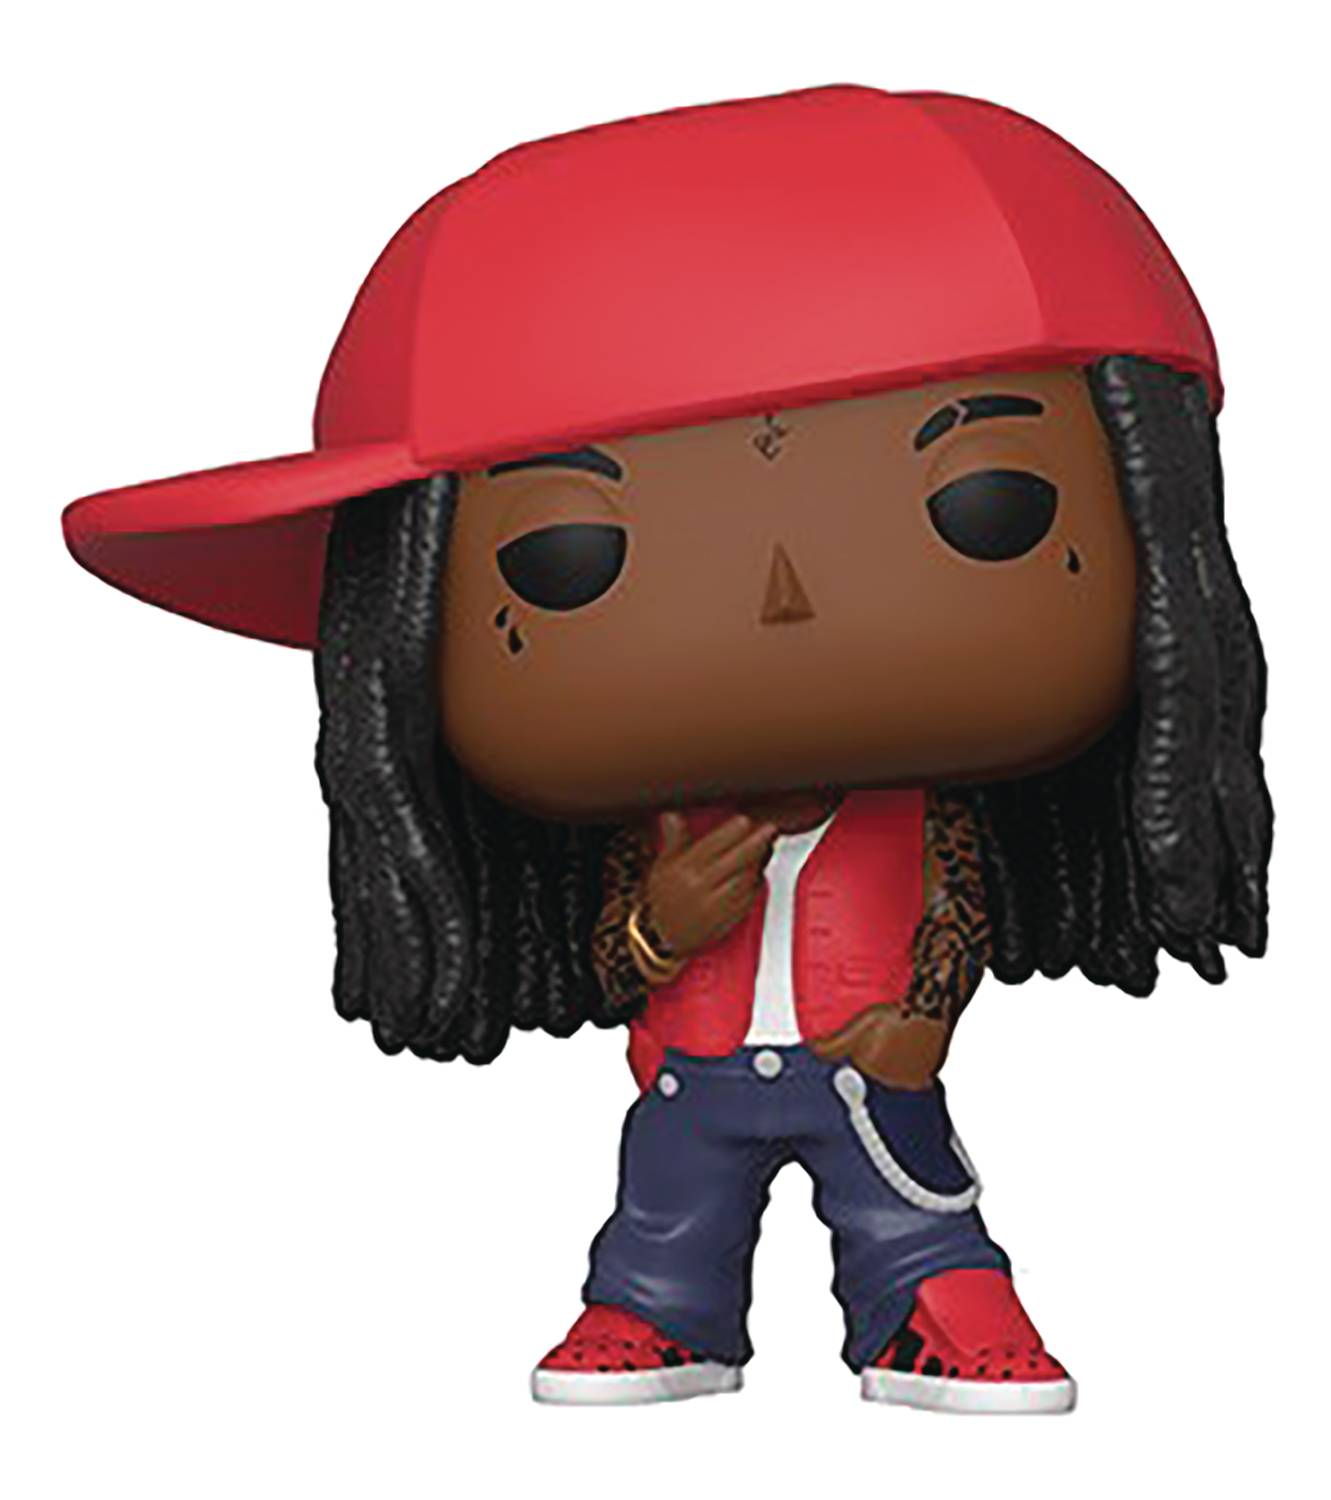 POP ROCKS LIL WAYNE VINYL FIGURE